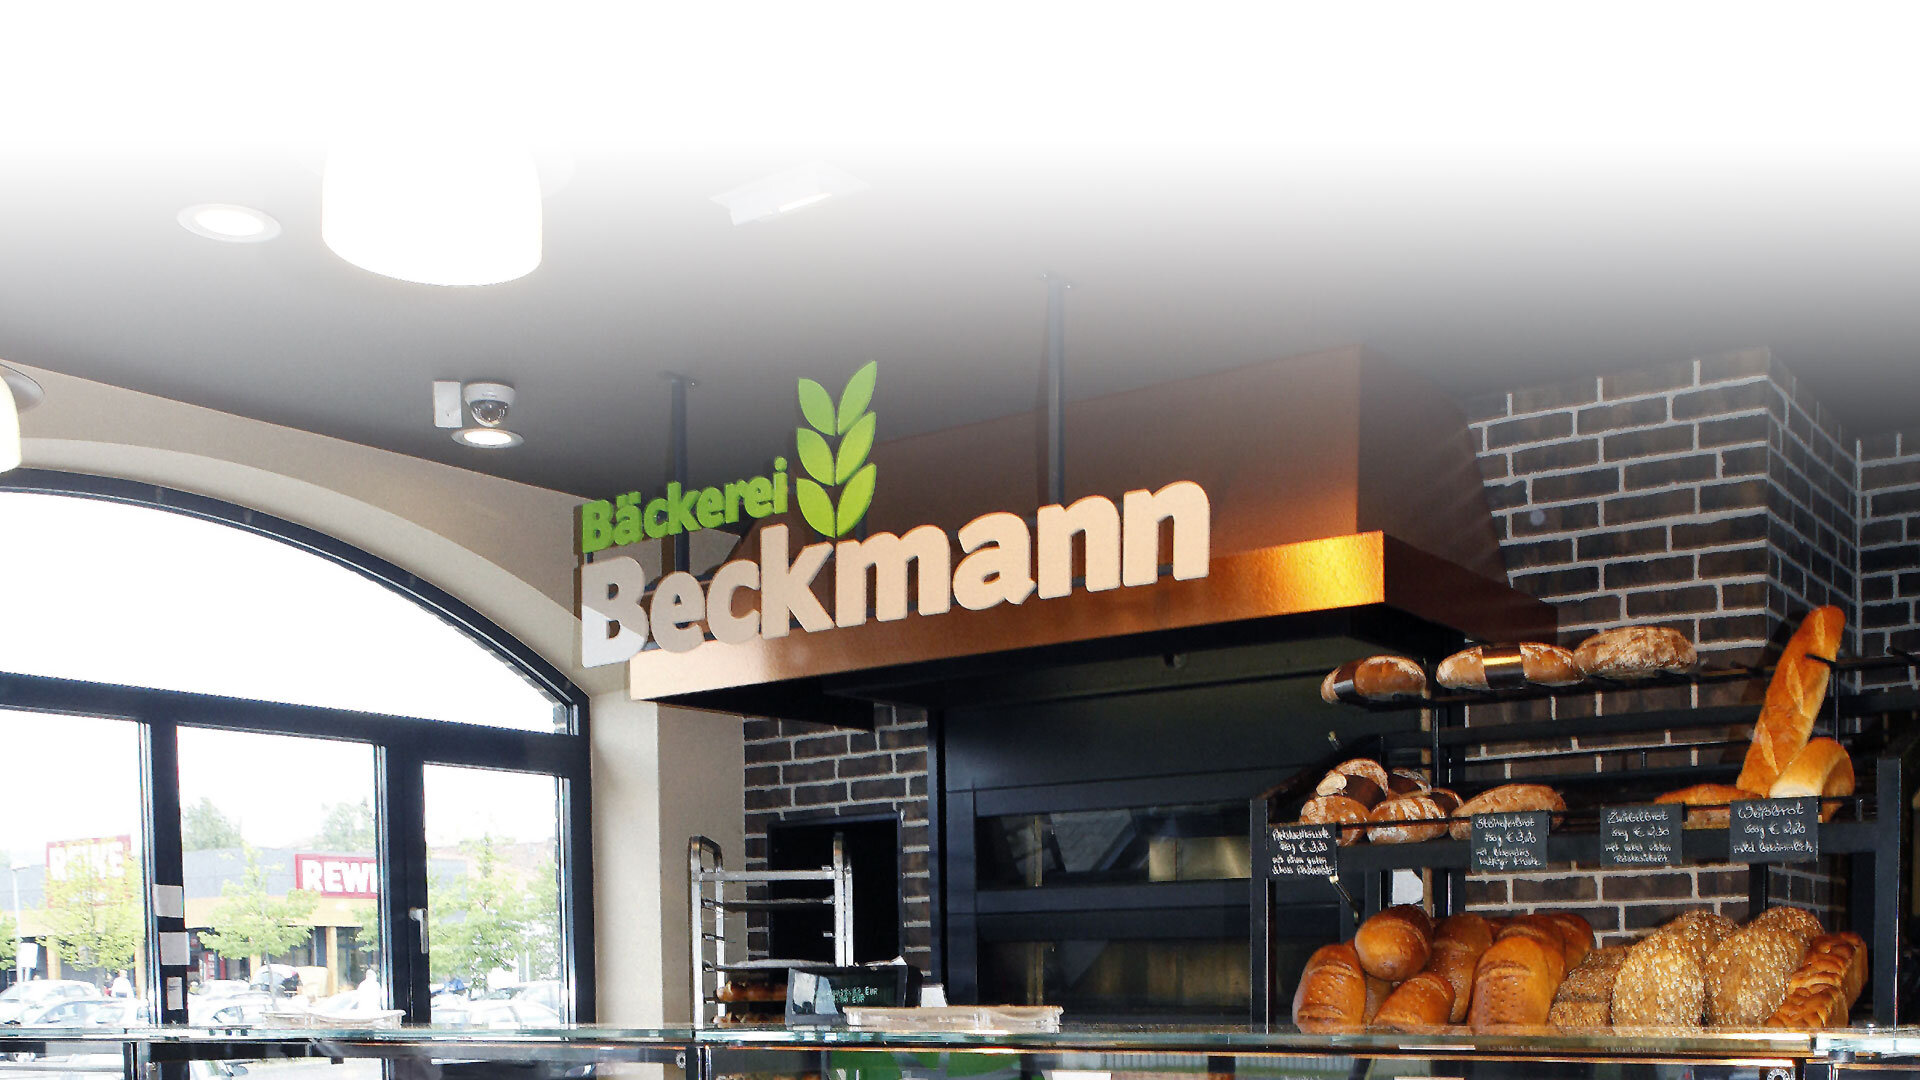 Bäckerei Beckmann in Uslar